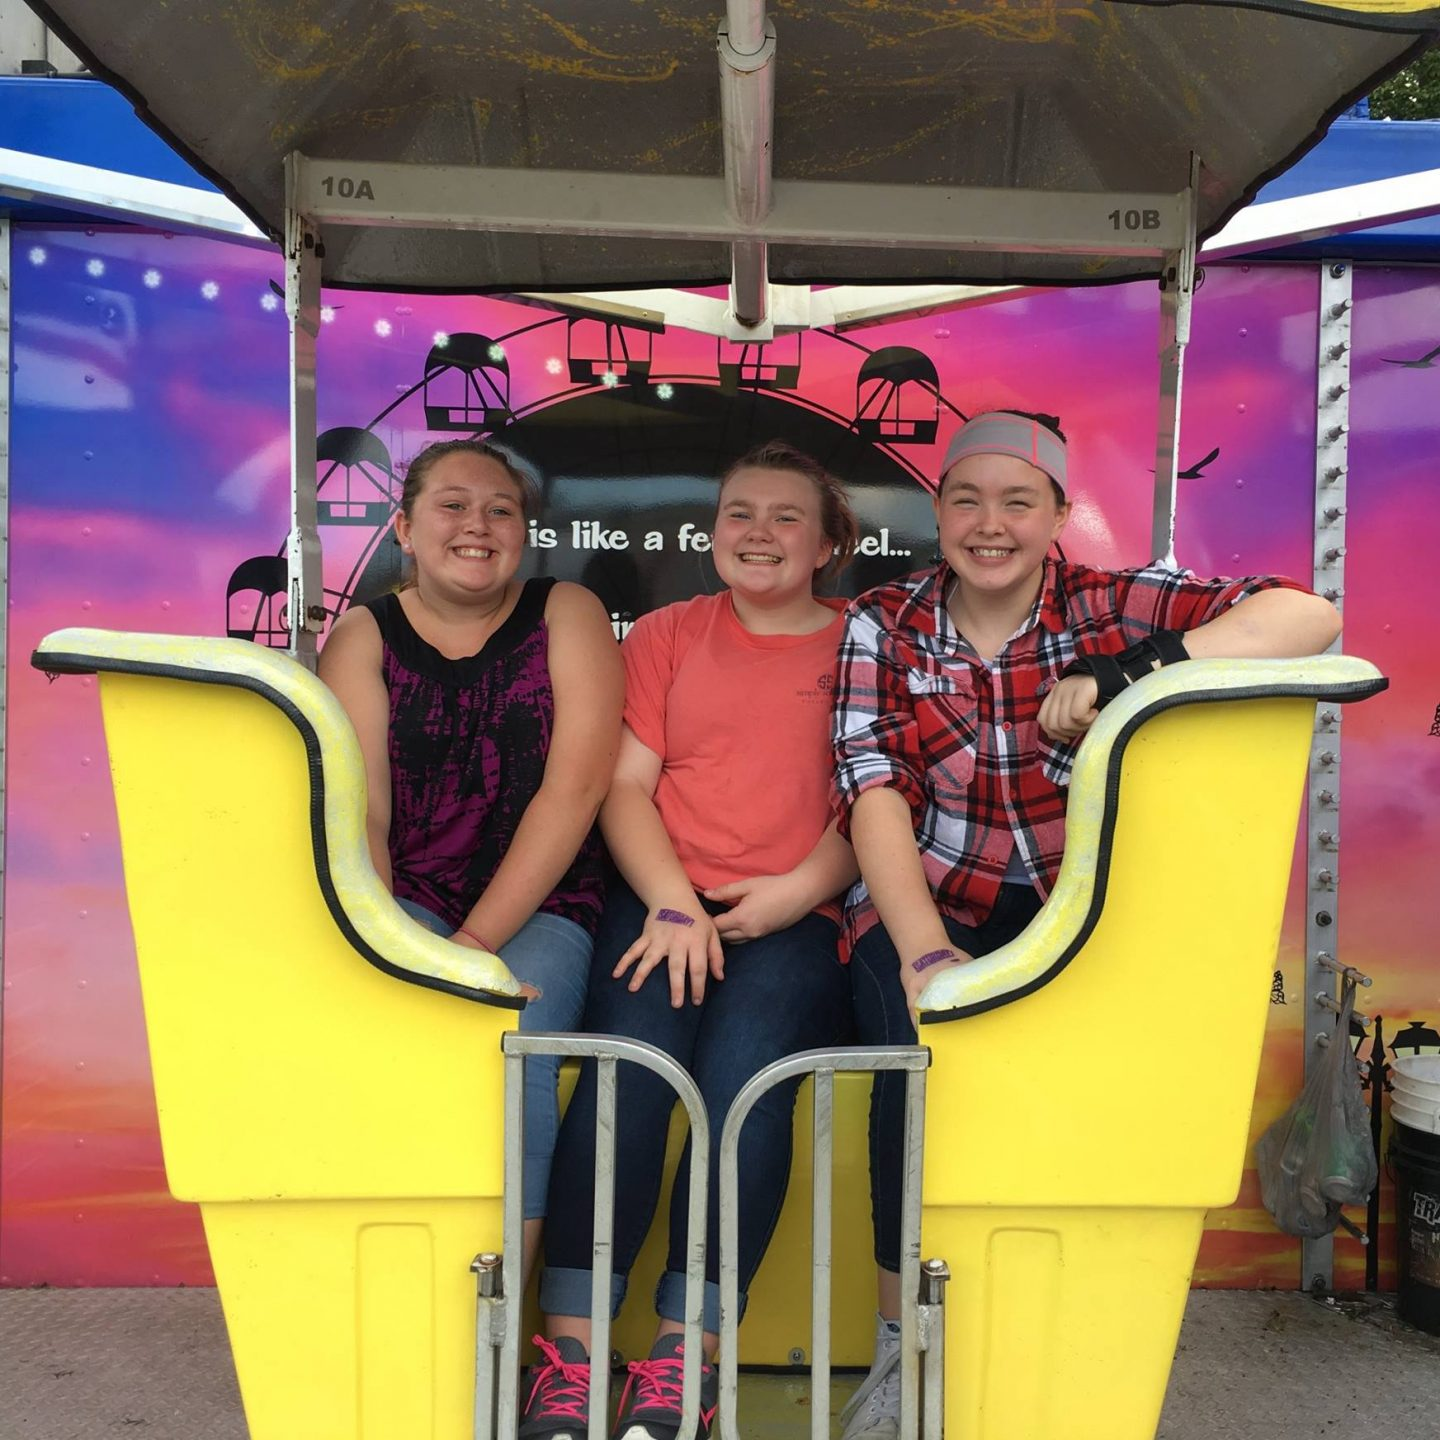 2018 Stokes County Fair Dates Announced!